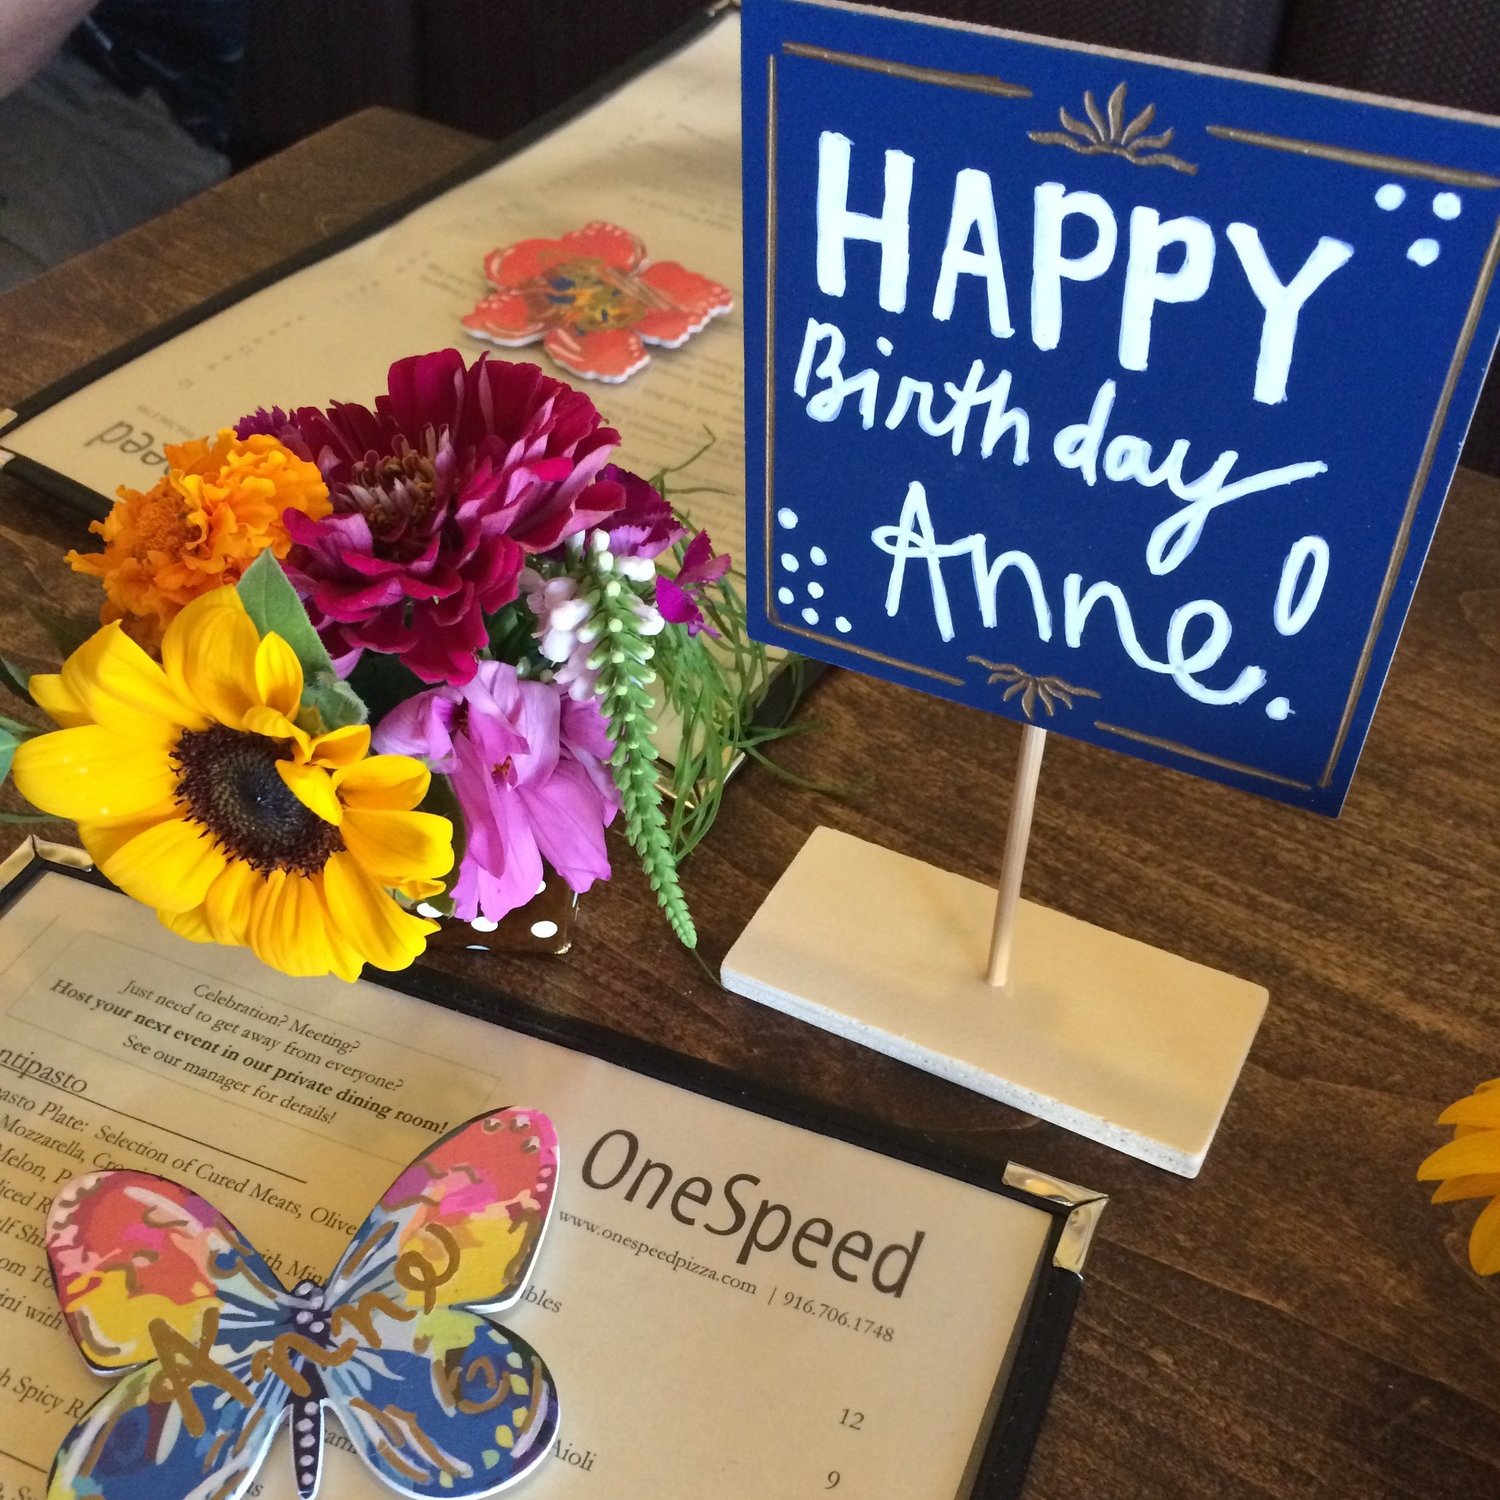 SURPRISE BIRTHDAY DINNER OUT. - SEPT. 2015